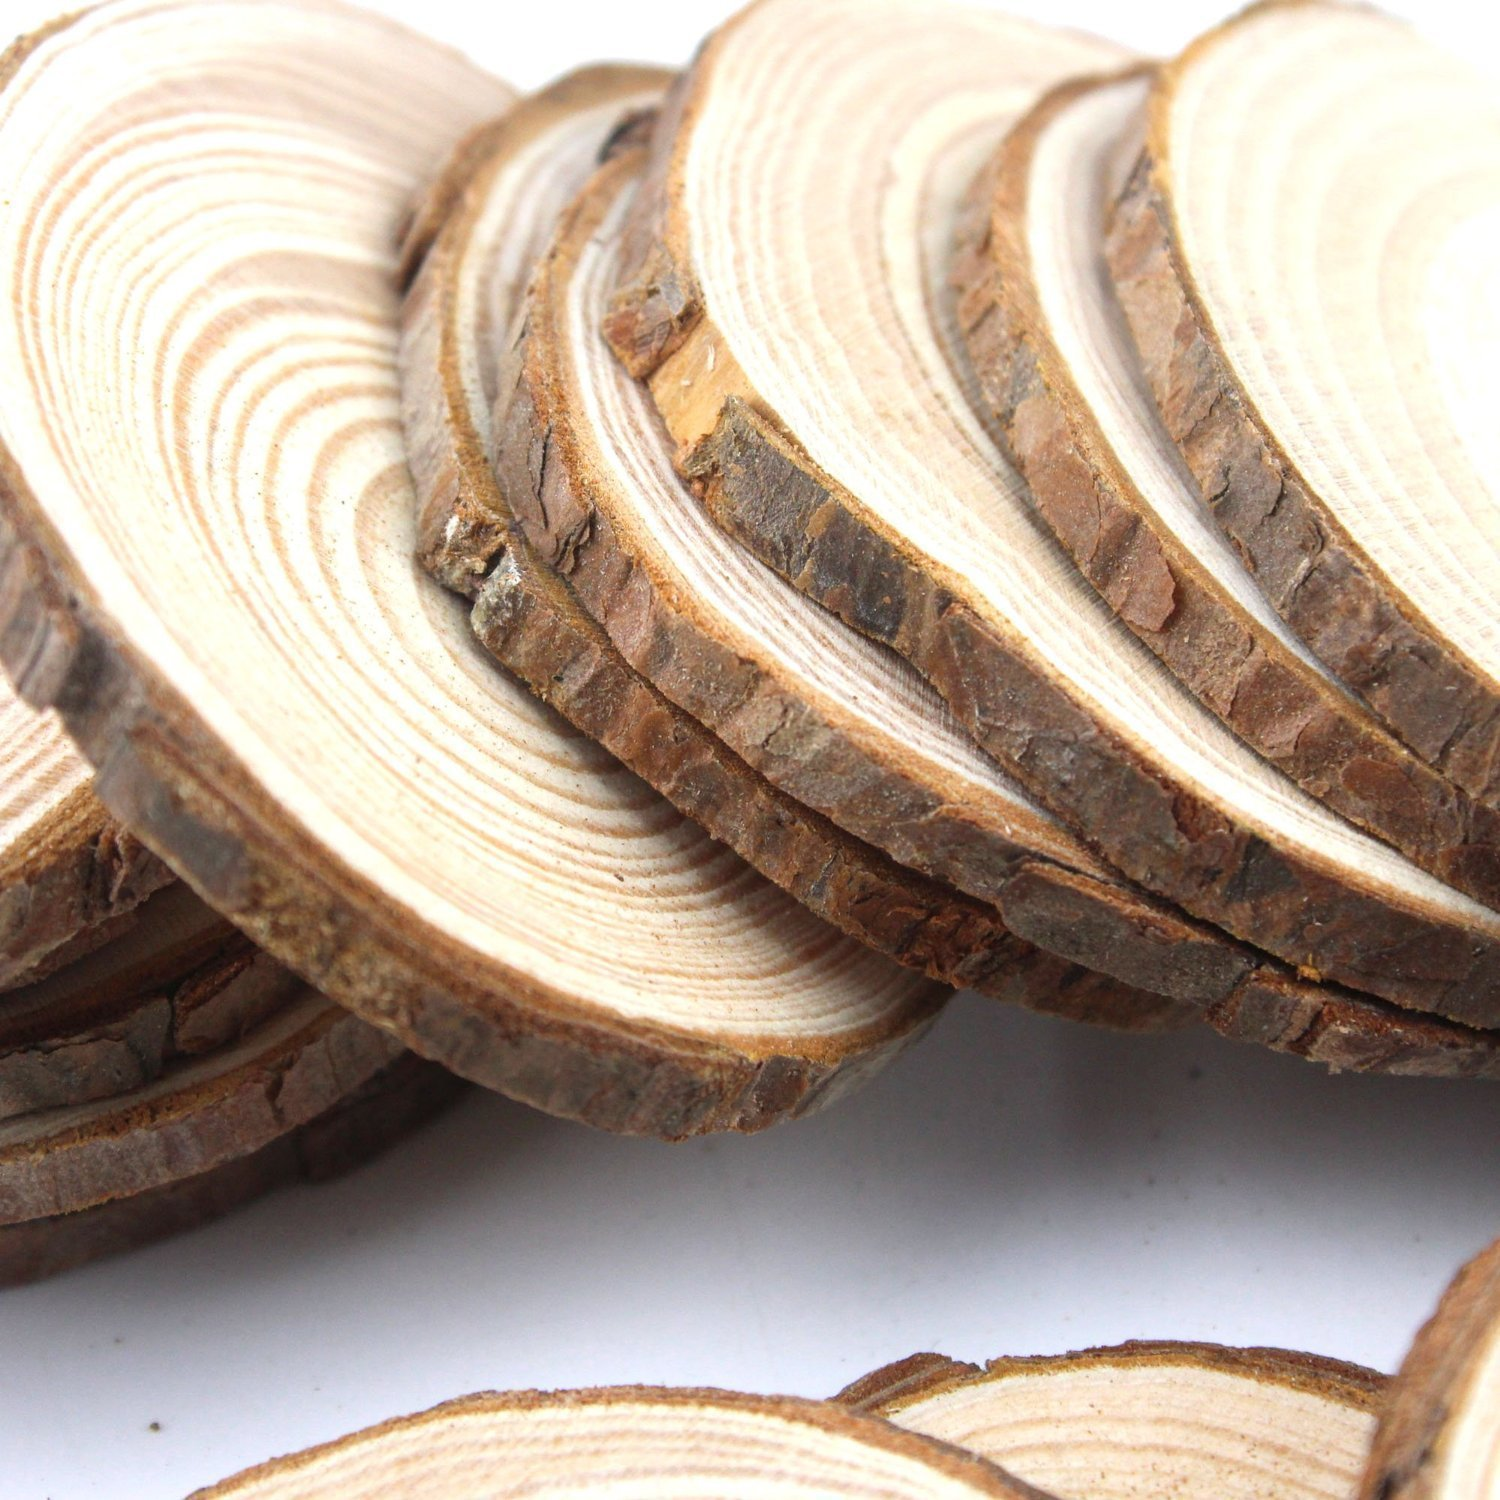 Coco Unpainted Natural Round Blank Wood Slices With Tree Bark